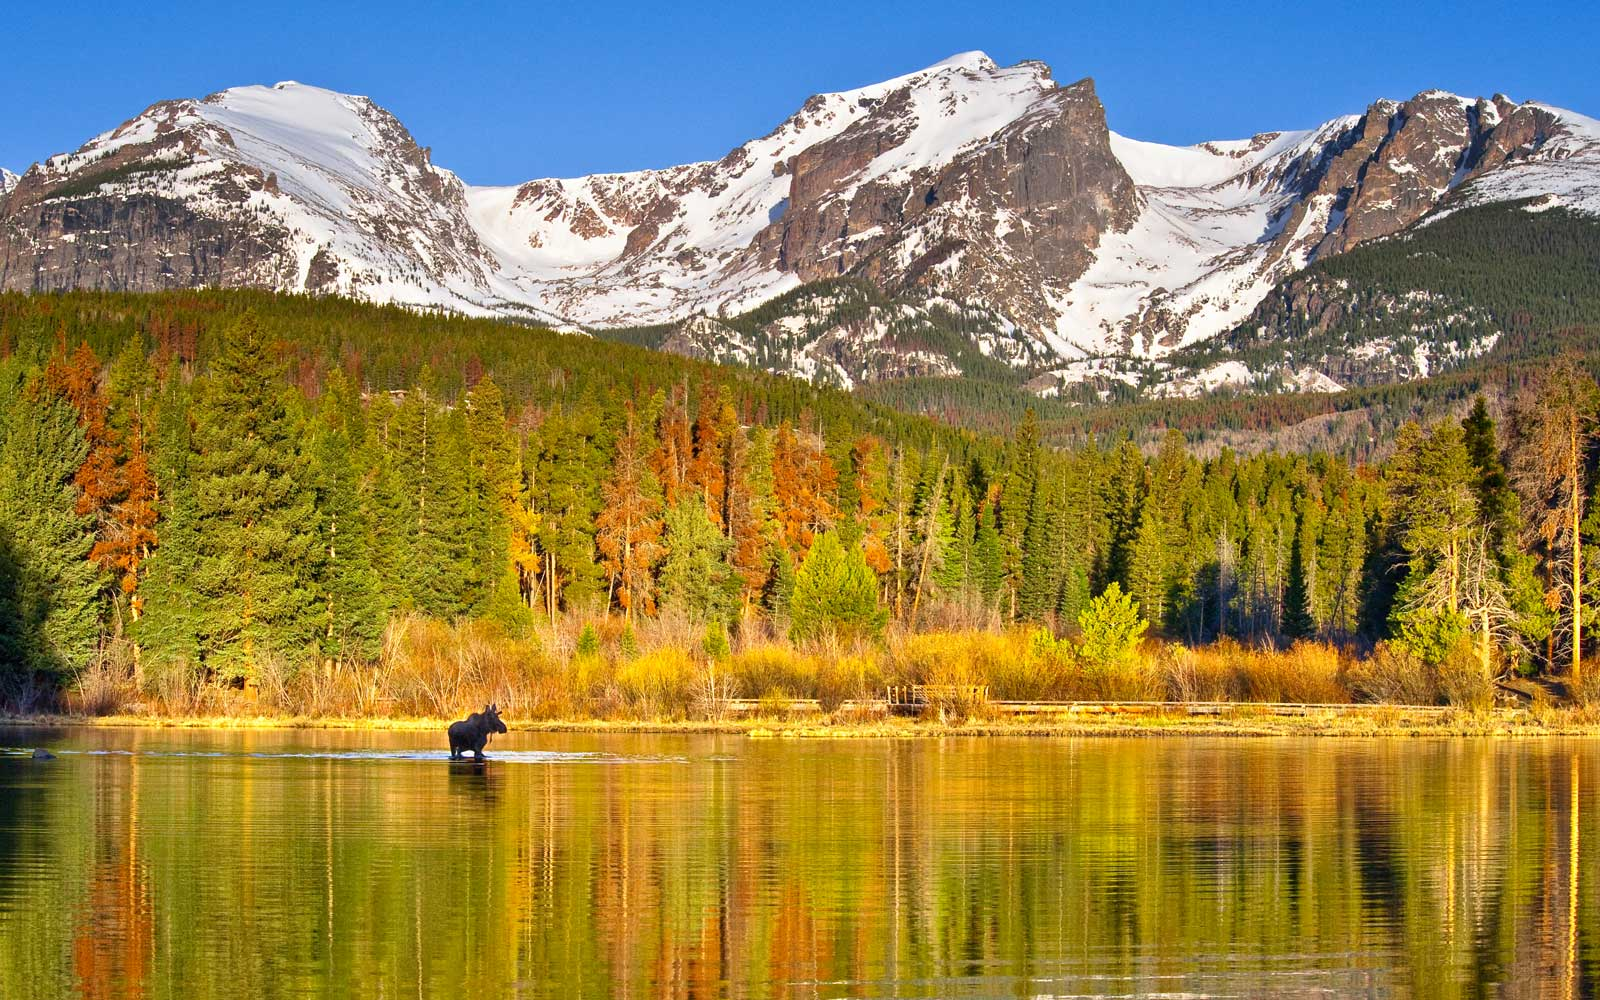 A moose in Sprague Lake in Rocky Mountain National Park